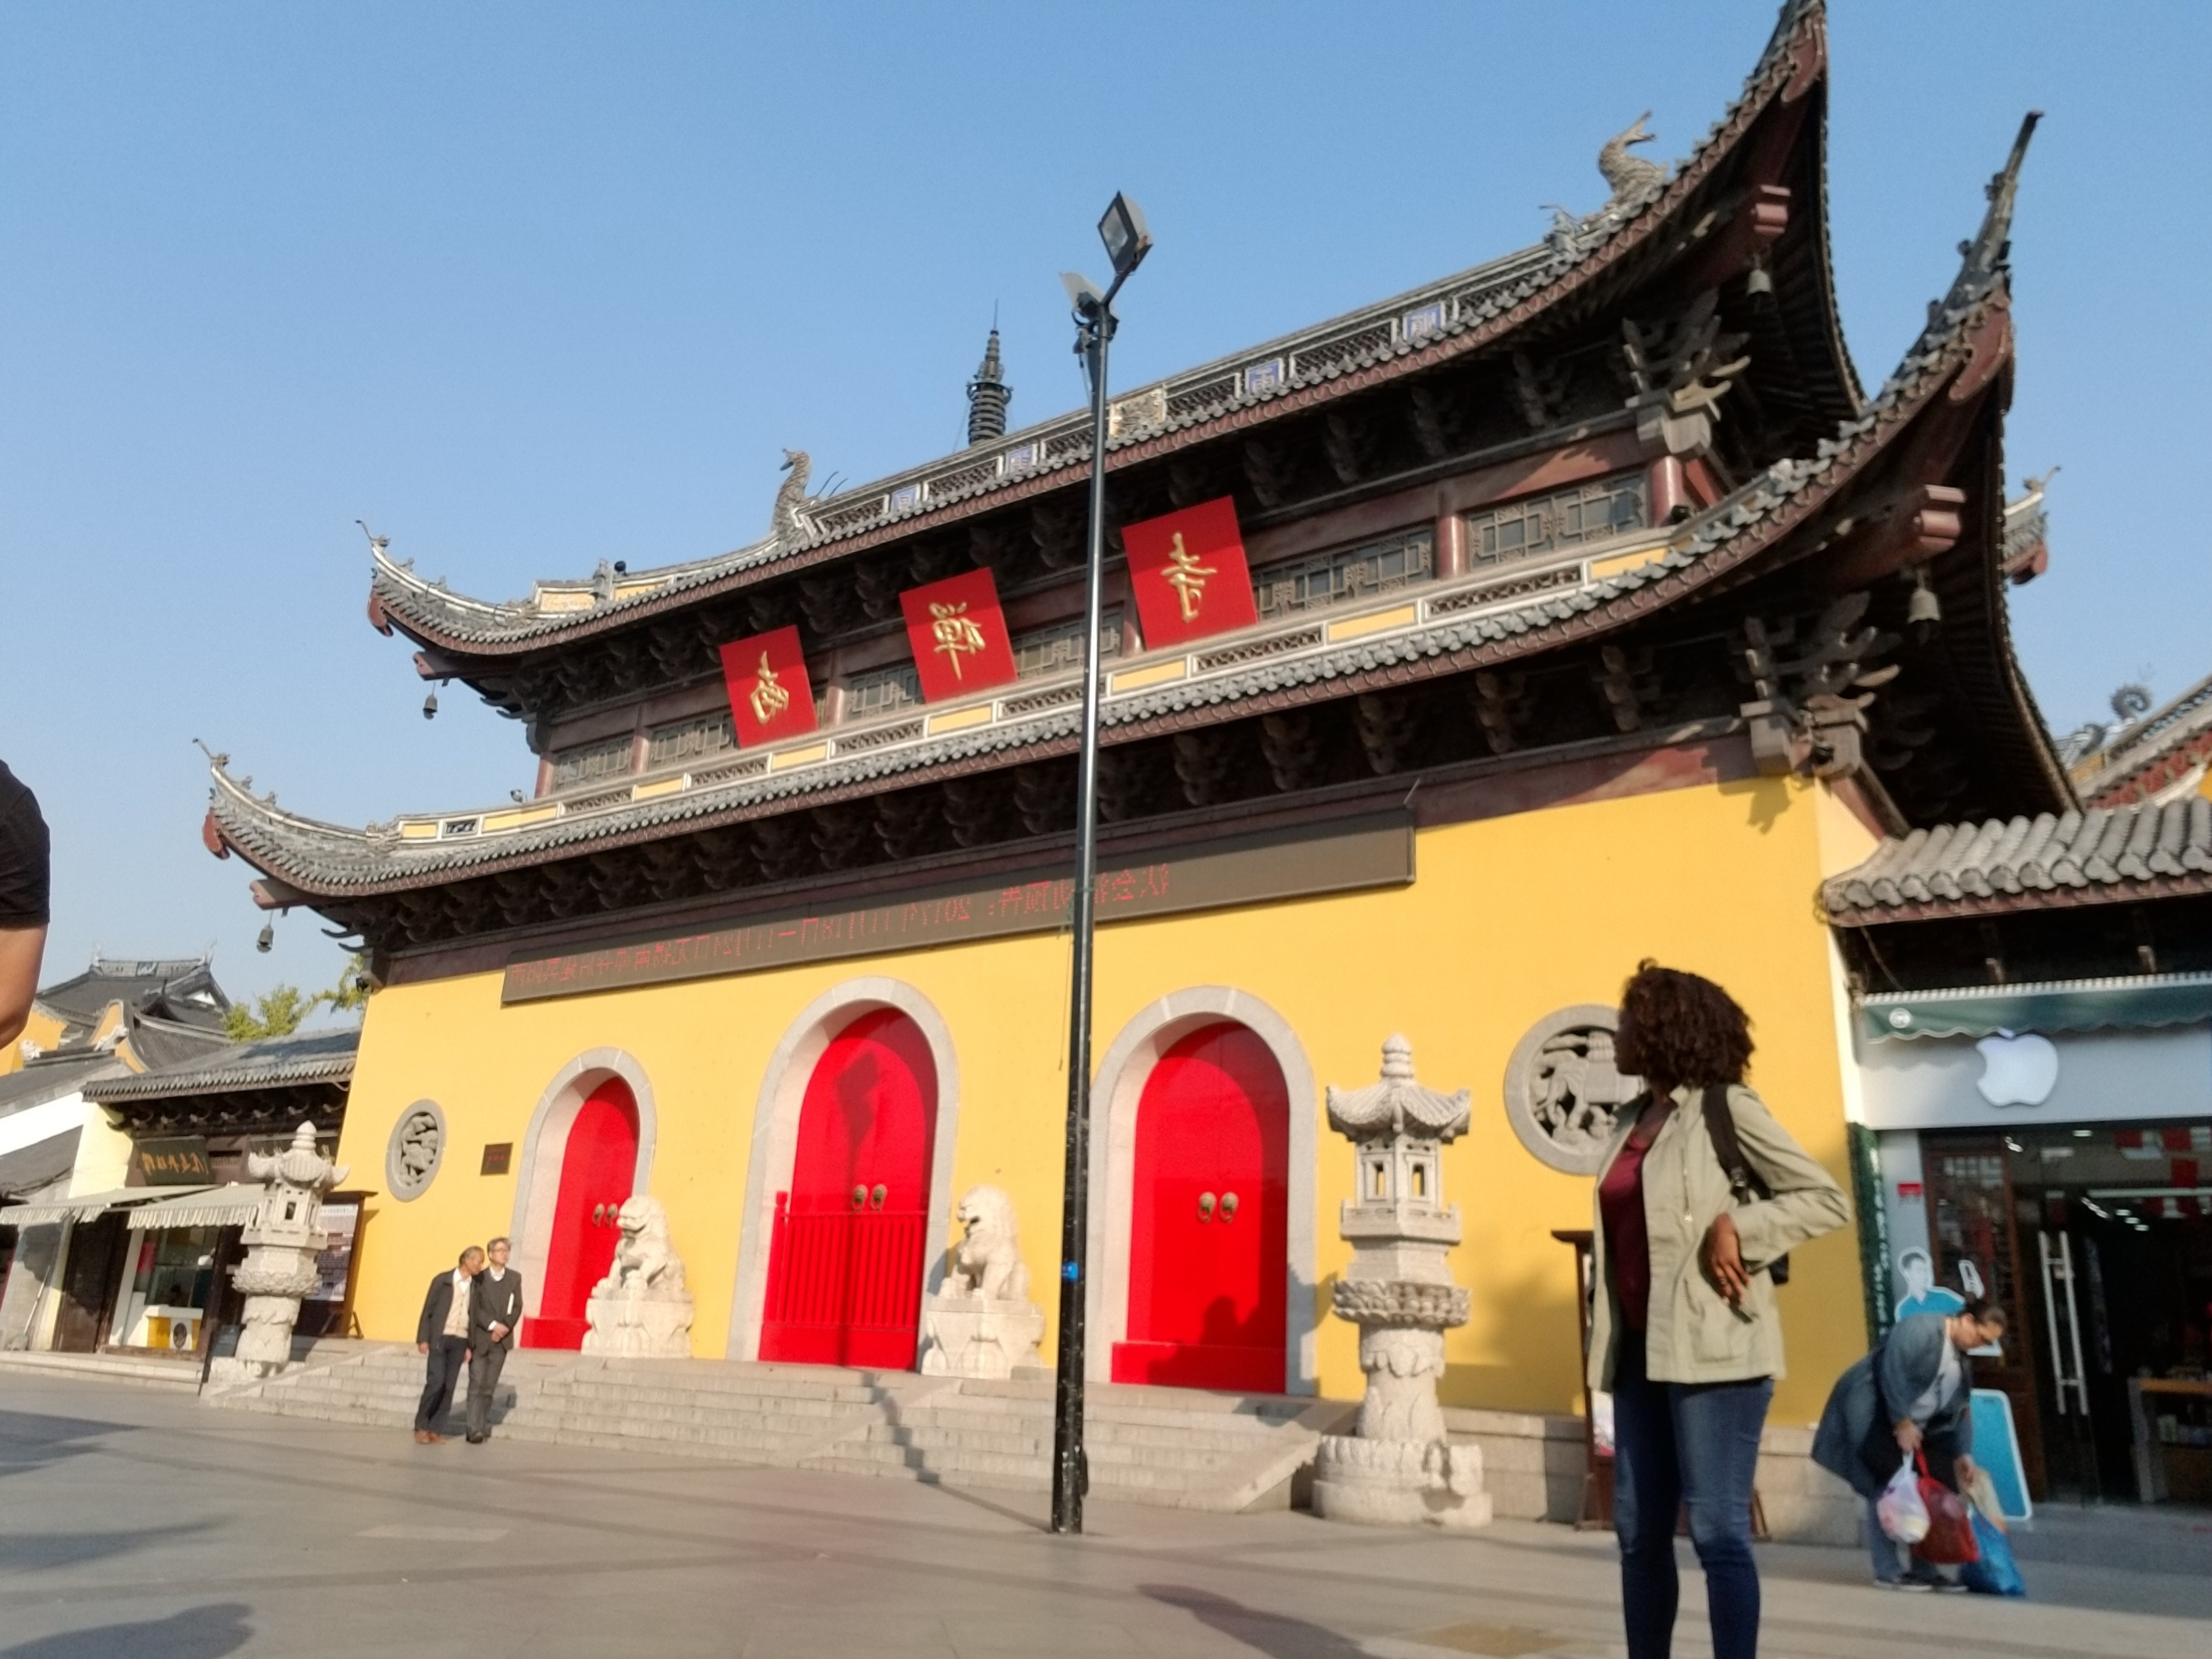 Get TEFL Certified and teach English in China